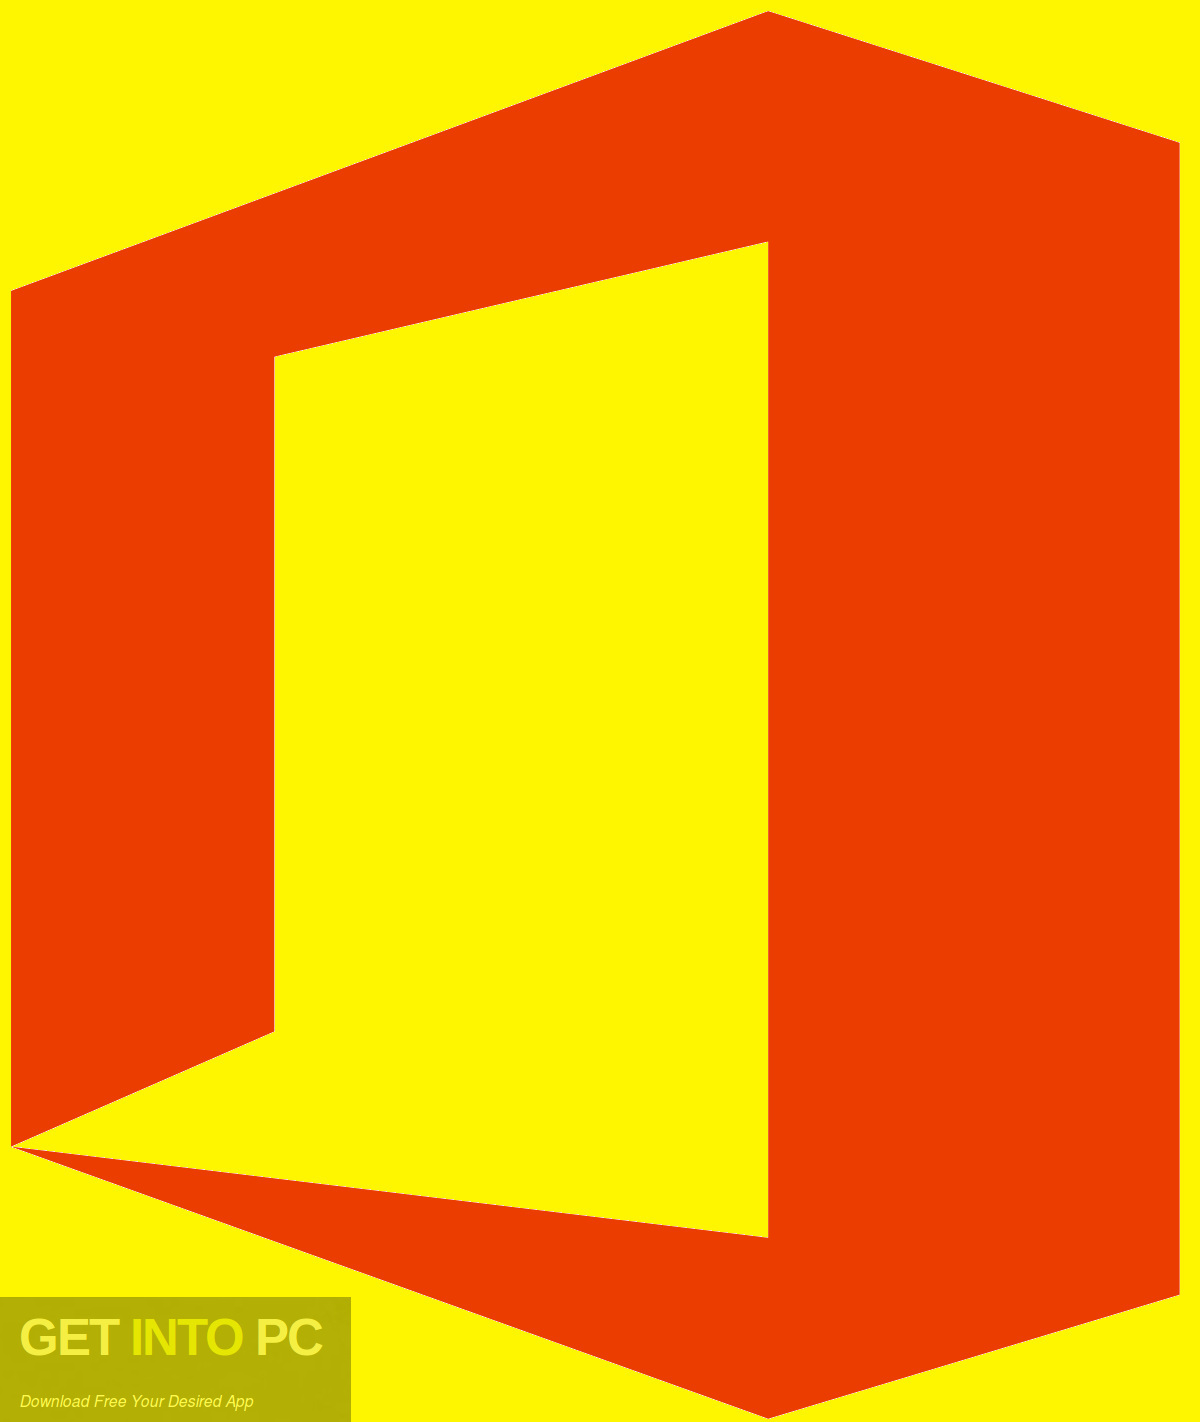 Office 2016 Professional Plus updated in August 2019 Download free-GetintoPC.com